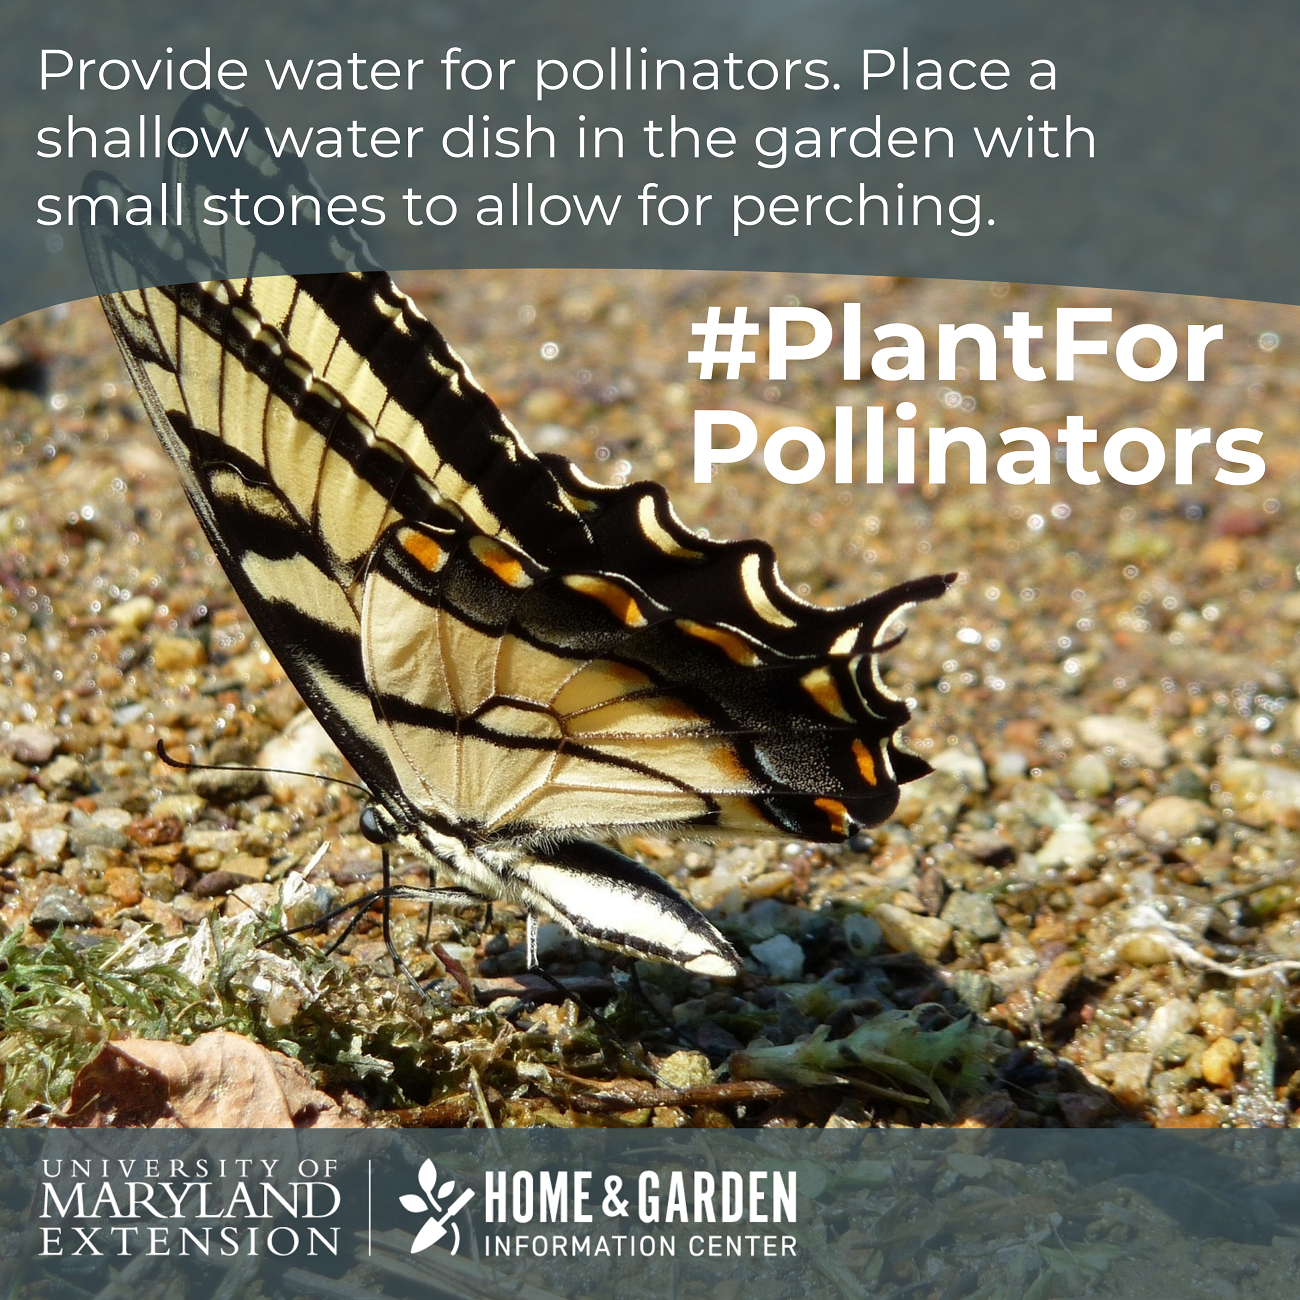 Plant for Pollinators: 9 Ways to Attract and Help Pollinators in ...